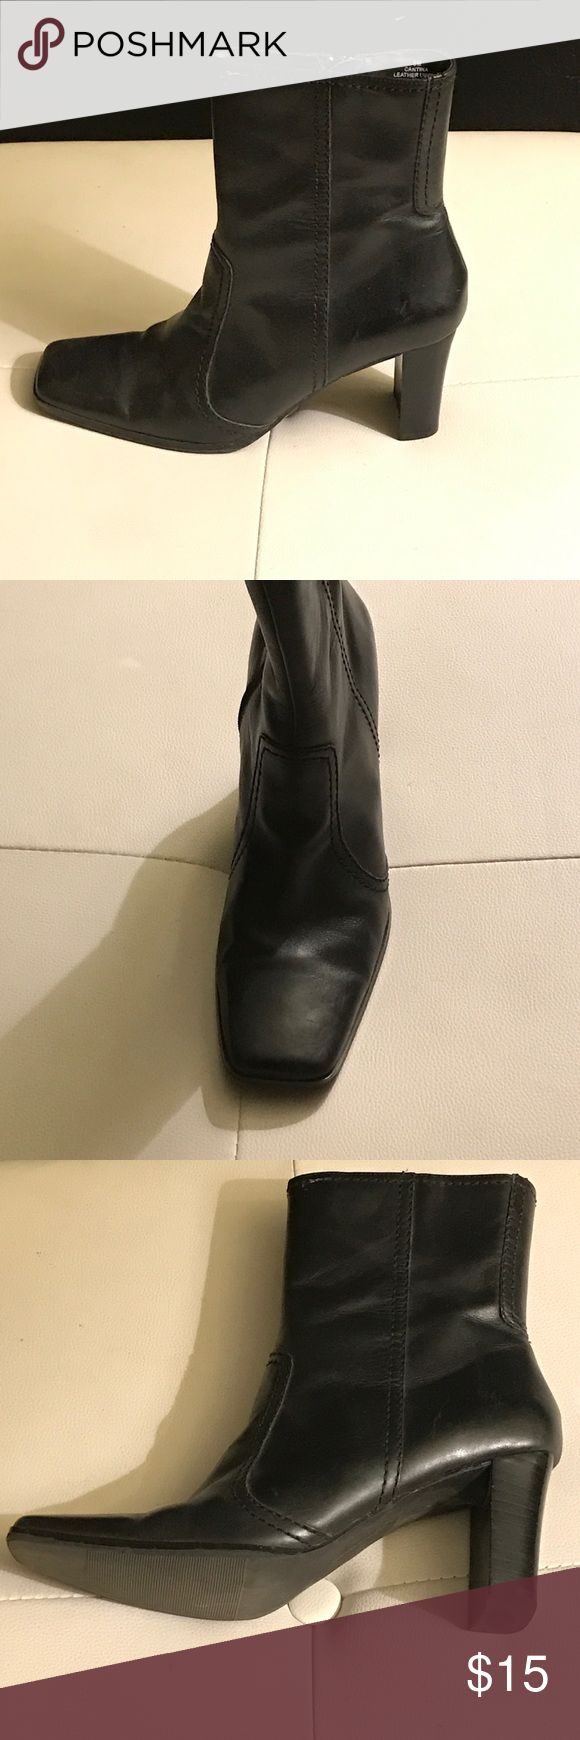 👠Hillard & Hanson Boots👠 These are in excellent condition, Black Faux Leather Short Ankle Boots. They have side zipper and wood heel. Hillard & Hanson Shoes Ankle Boots & Booties